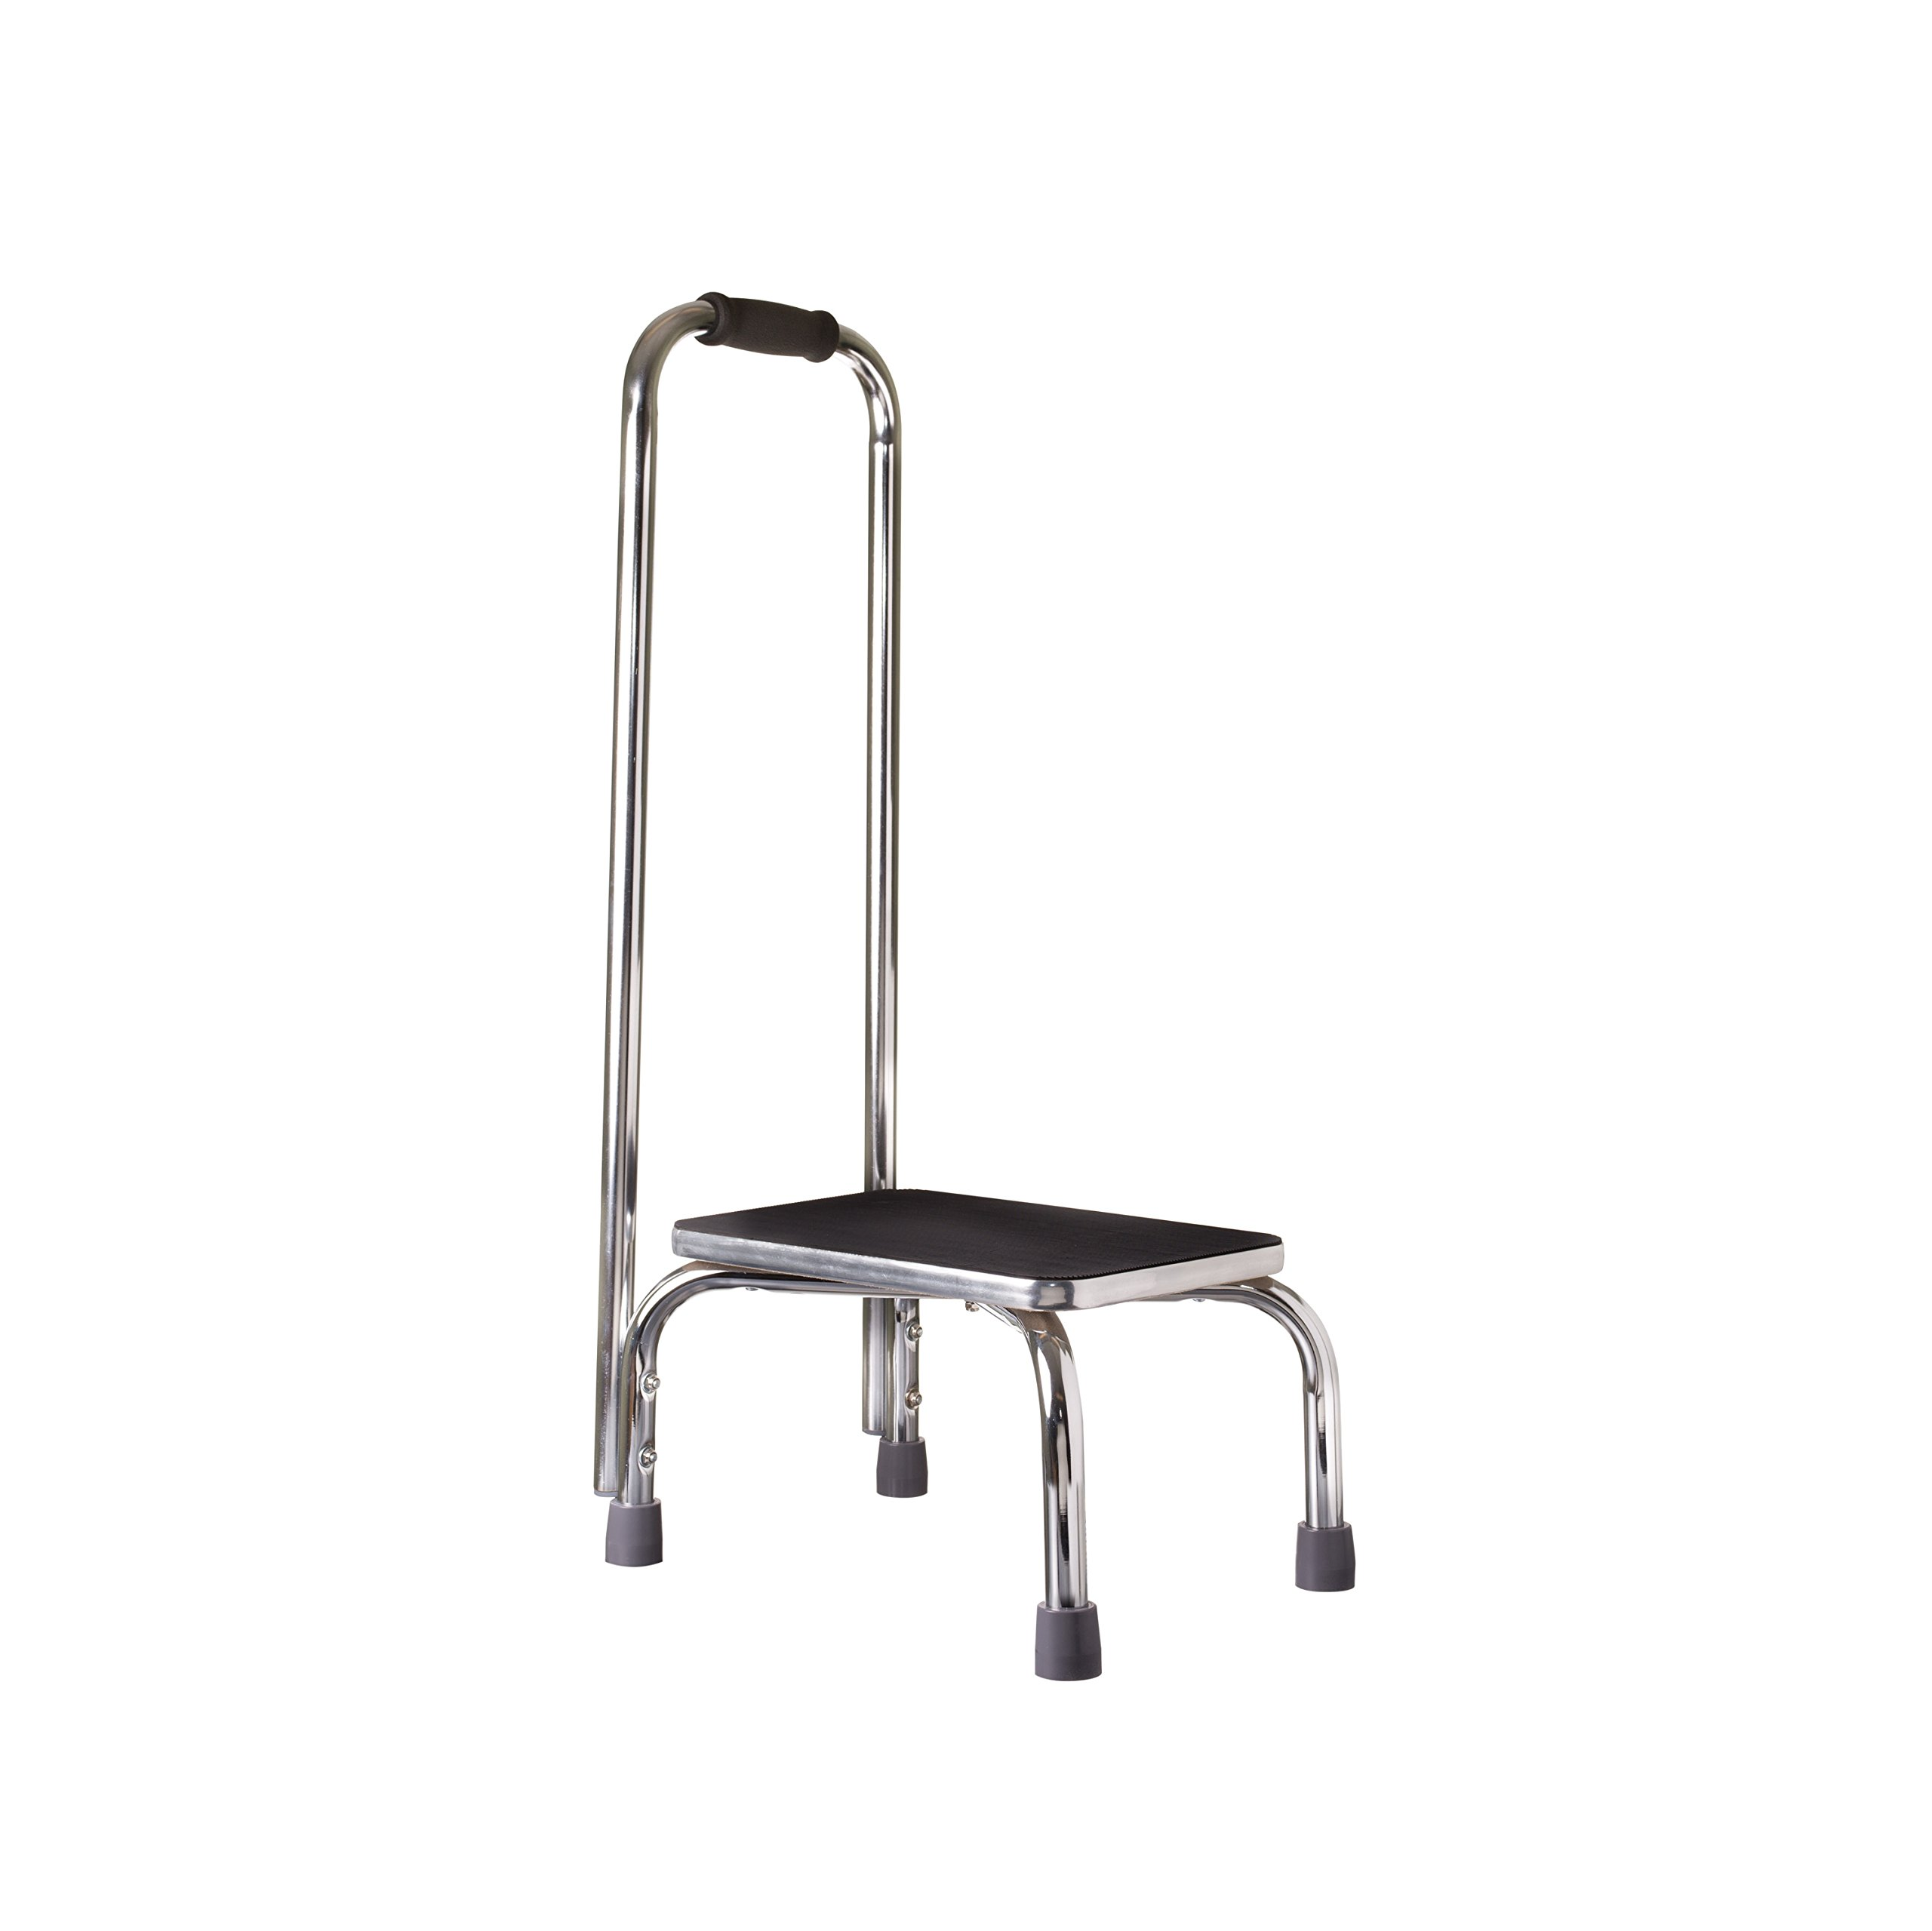 DMI Step Stool with Handle for Adults and Seniors, Heavy Duty Metal Stepping Stool for High Beds, Portable Foot Step Stool for Elderly, 250 lb Weight Capacity-1 Each by Duro-Med (Image #2)